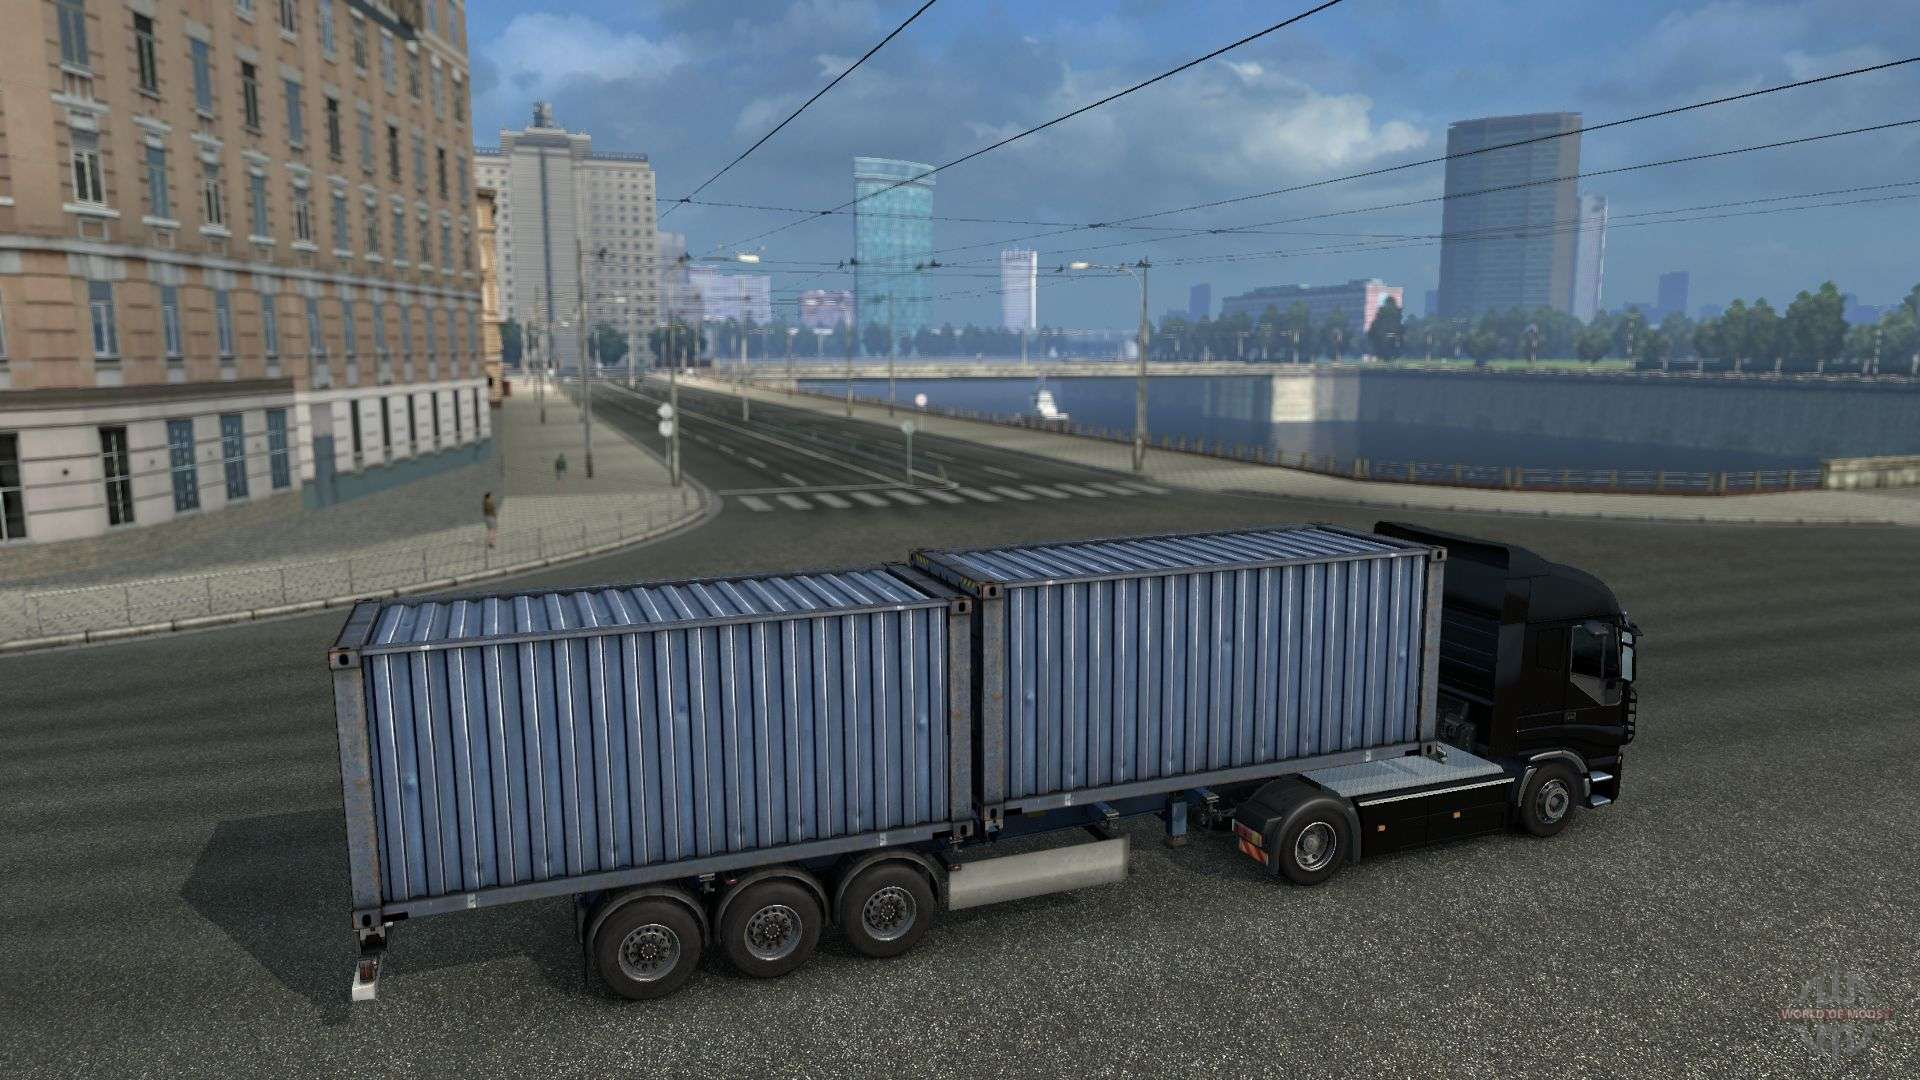 Connecting Of Maps Tsm Rusmap And Open Spaces For Euro Truck Simulator 2